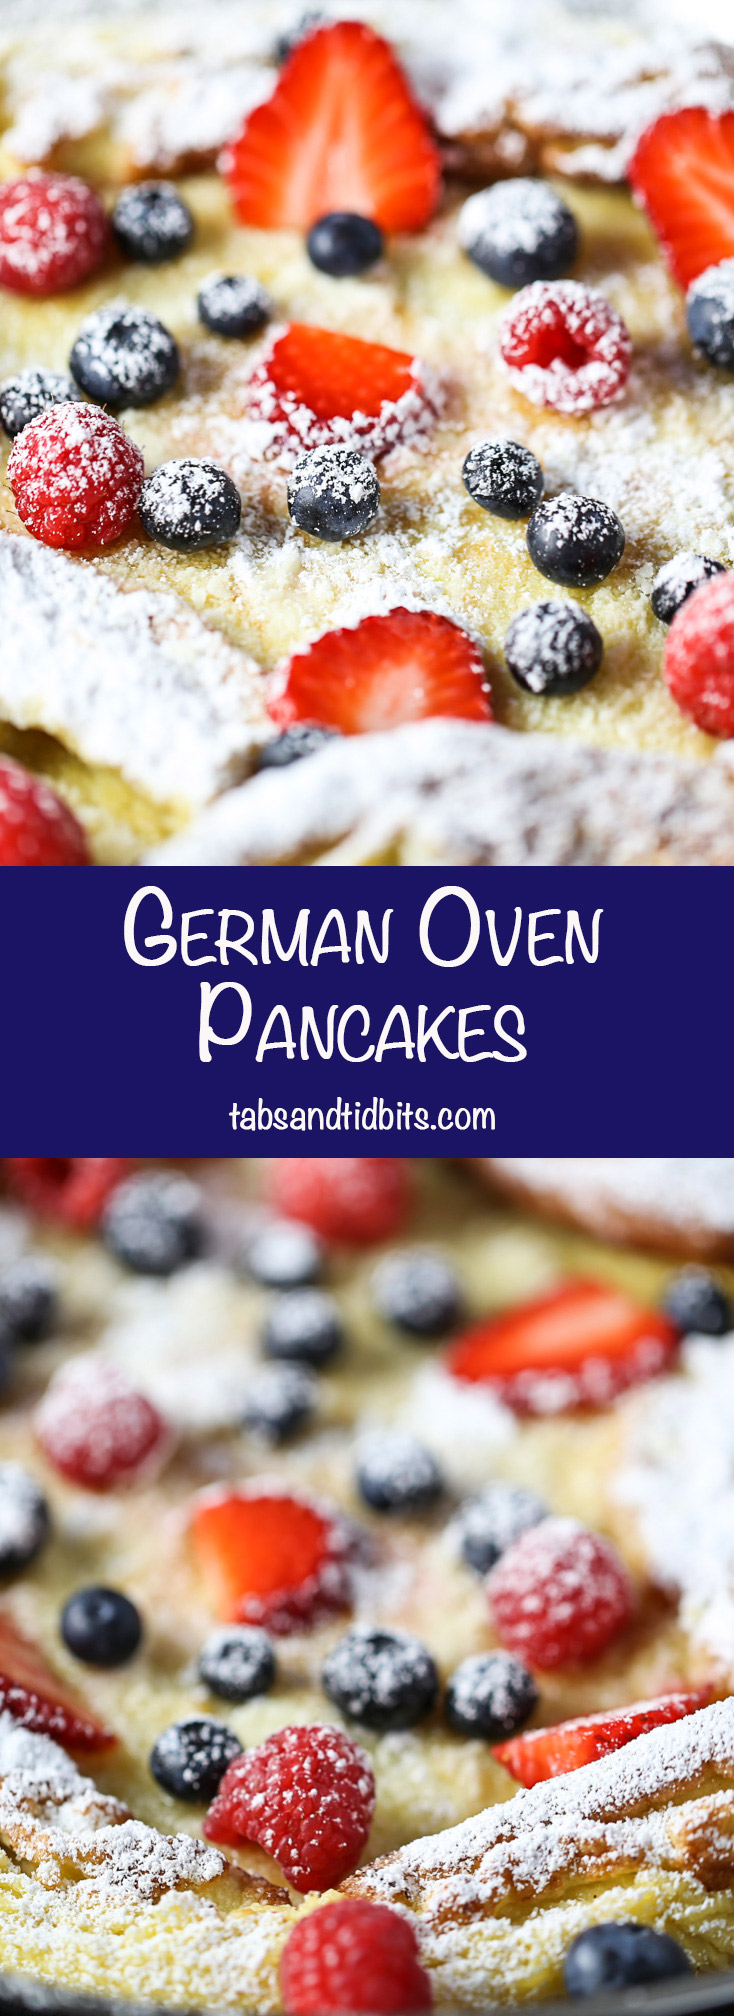 German Oven Pancakes - A classic oven pancake that puffs up into a golden delicious breakfast!